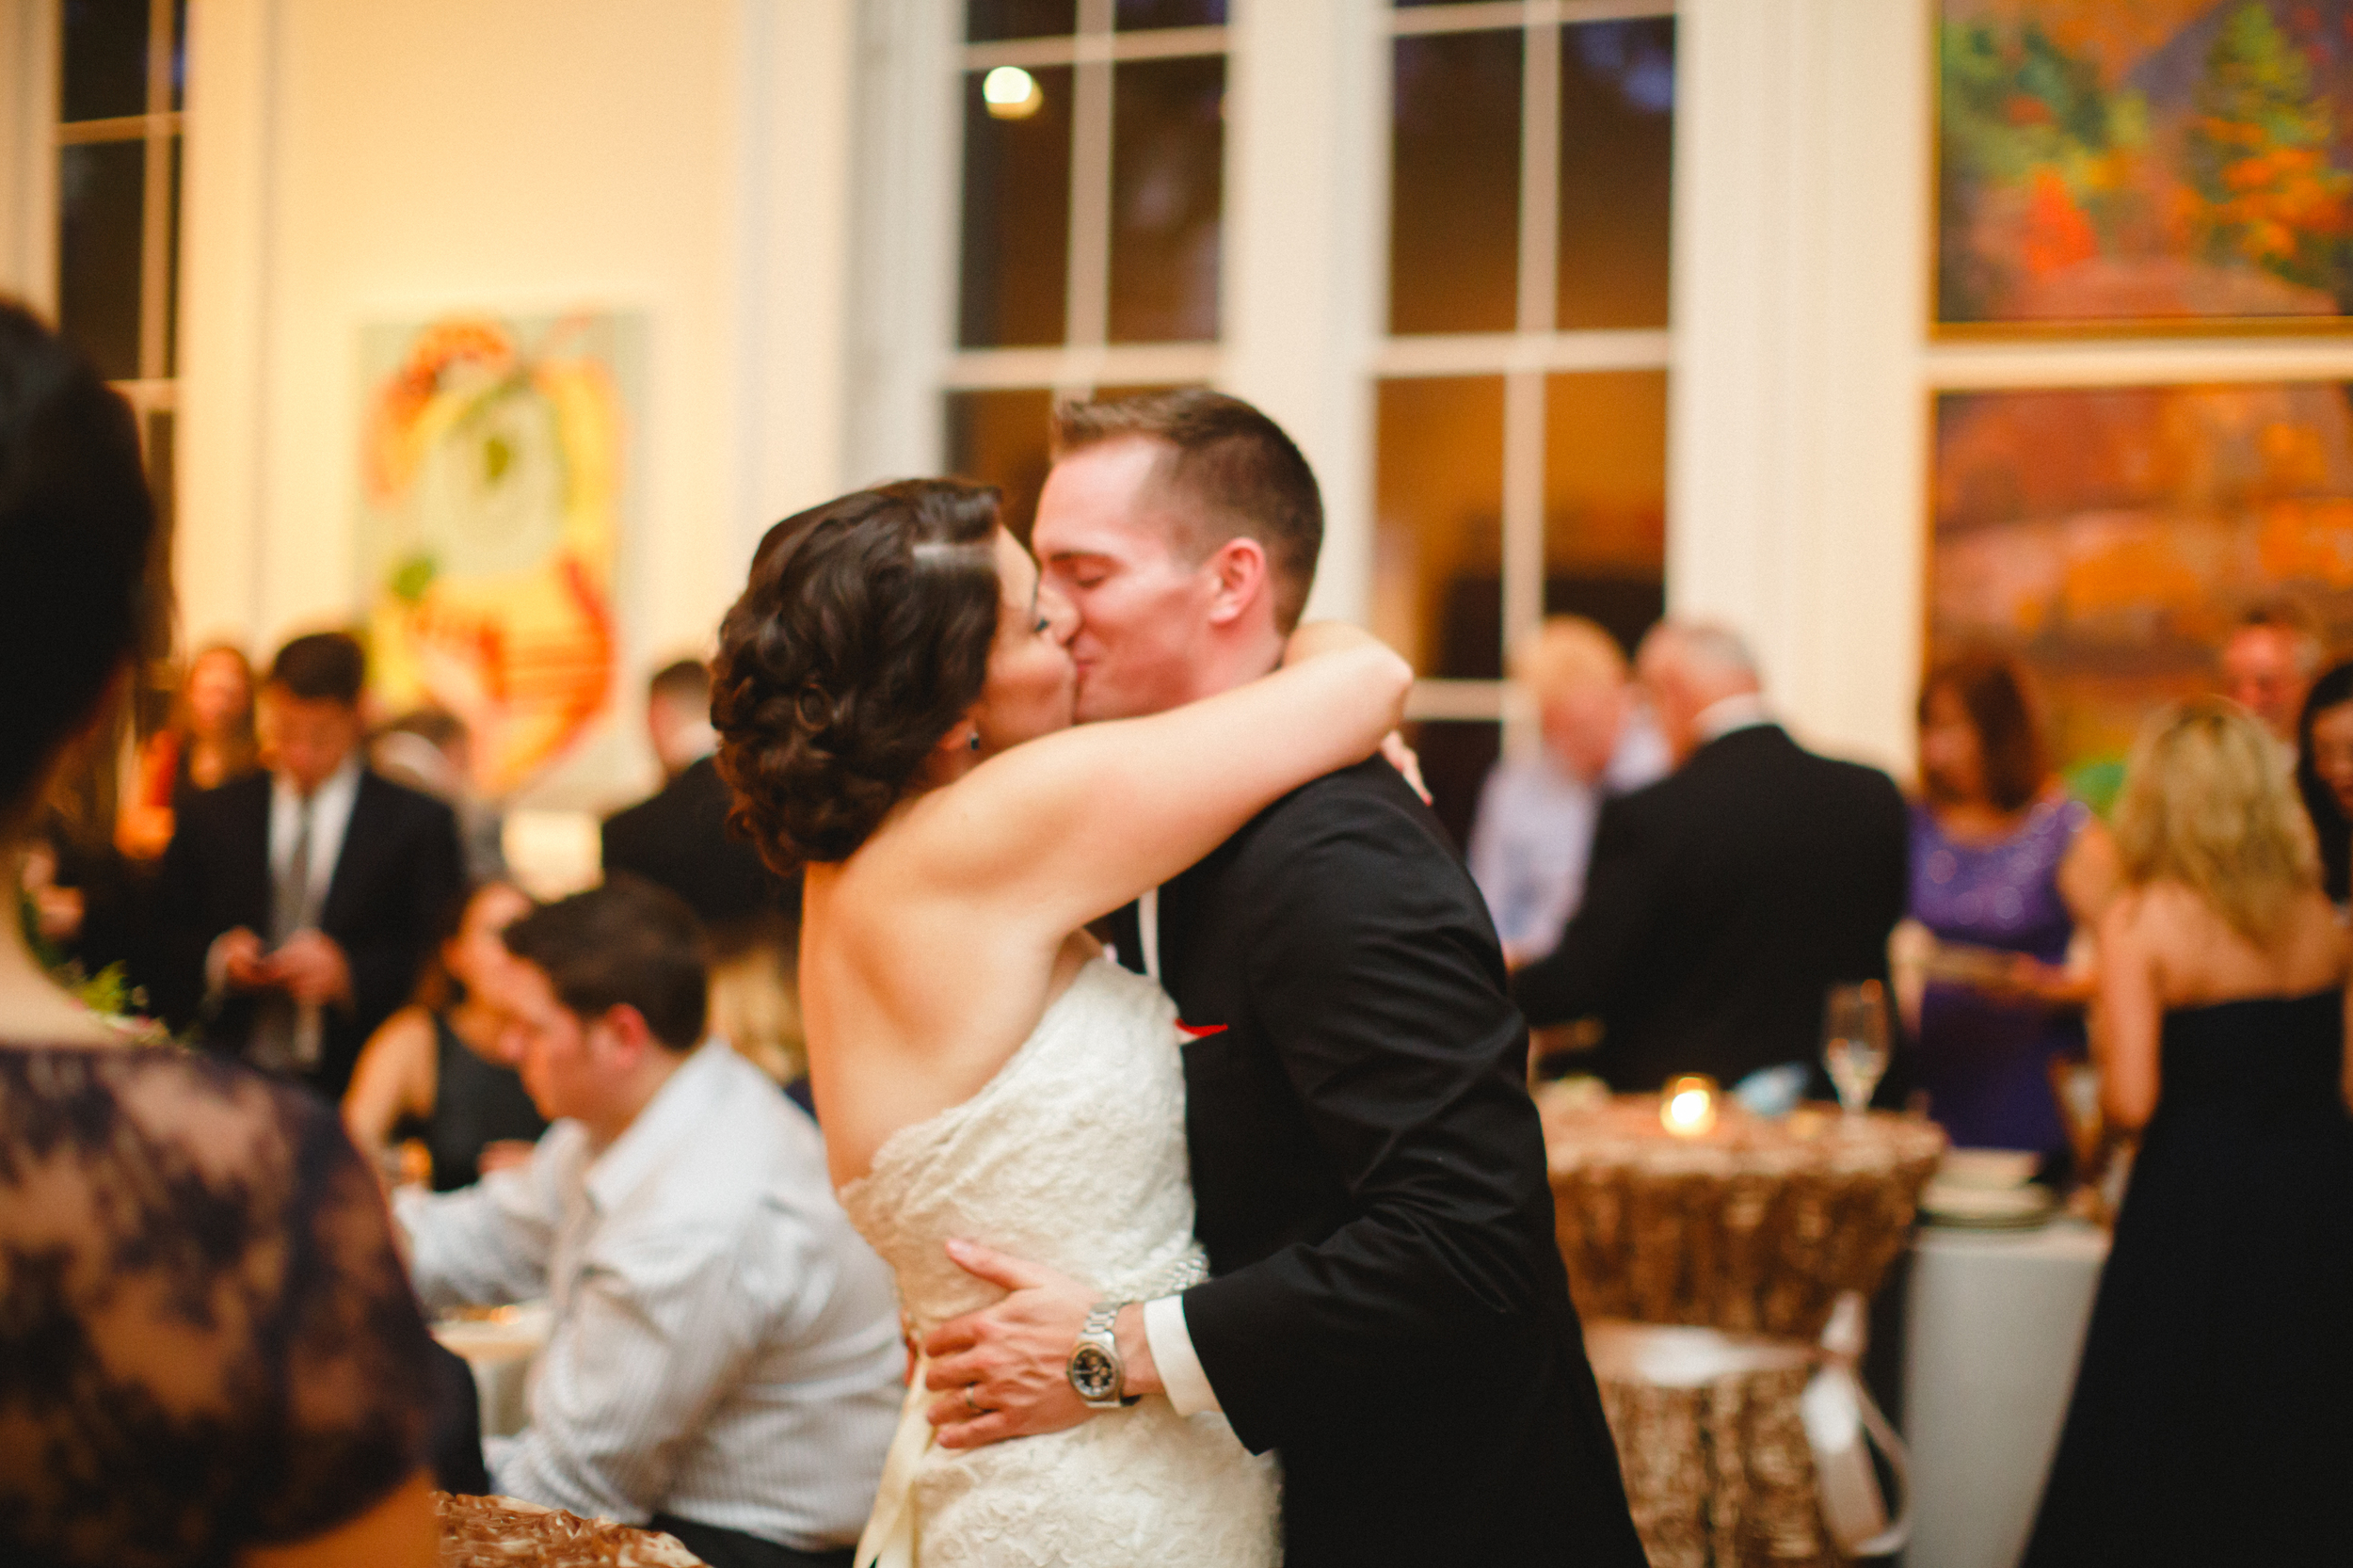 Vness_Photography_Wedding_Photographer_Washington-DC_Fish_Wedding-997.jpg